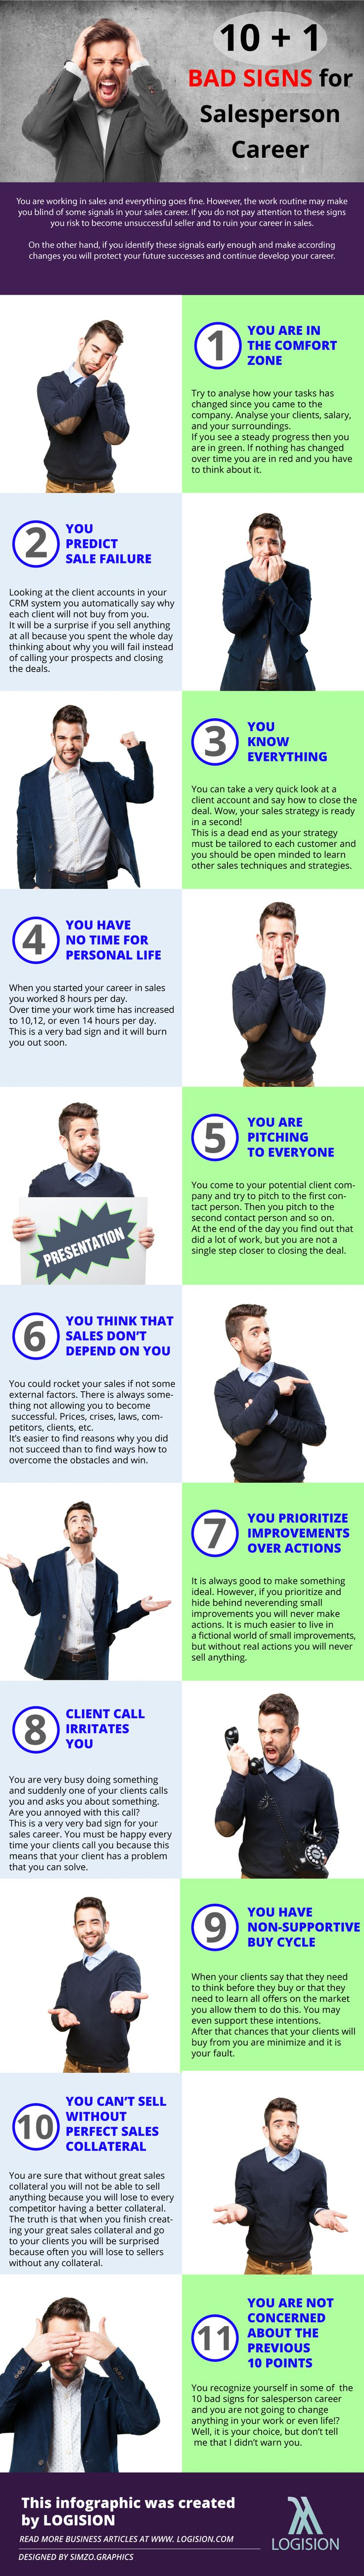 10+1 Bad Signs for Salesperson Career | Logision